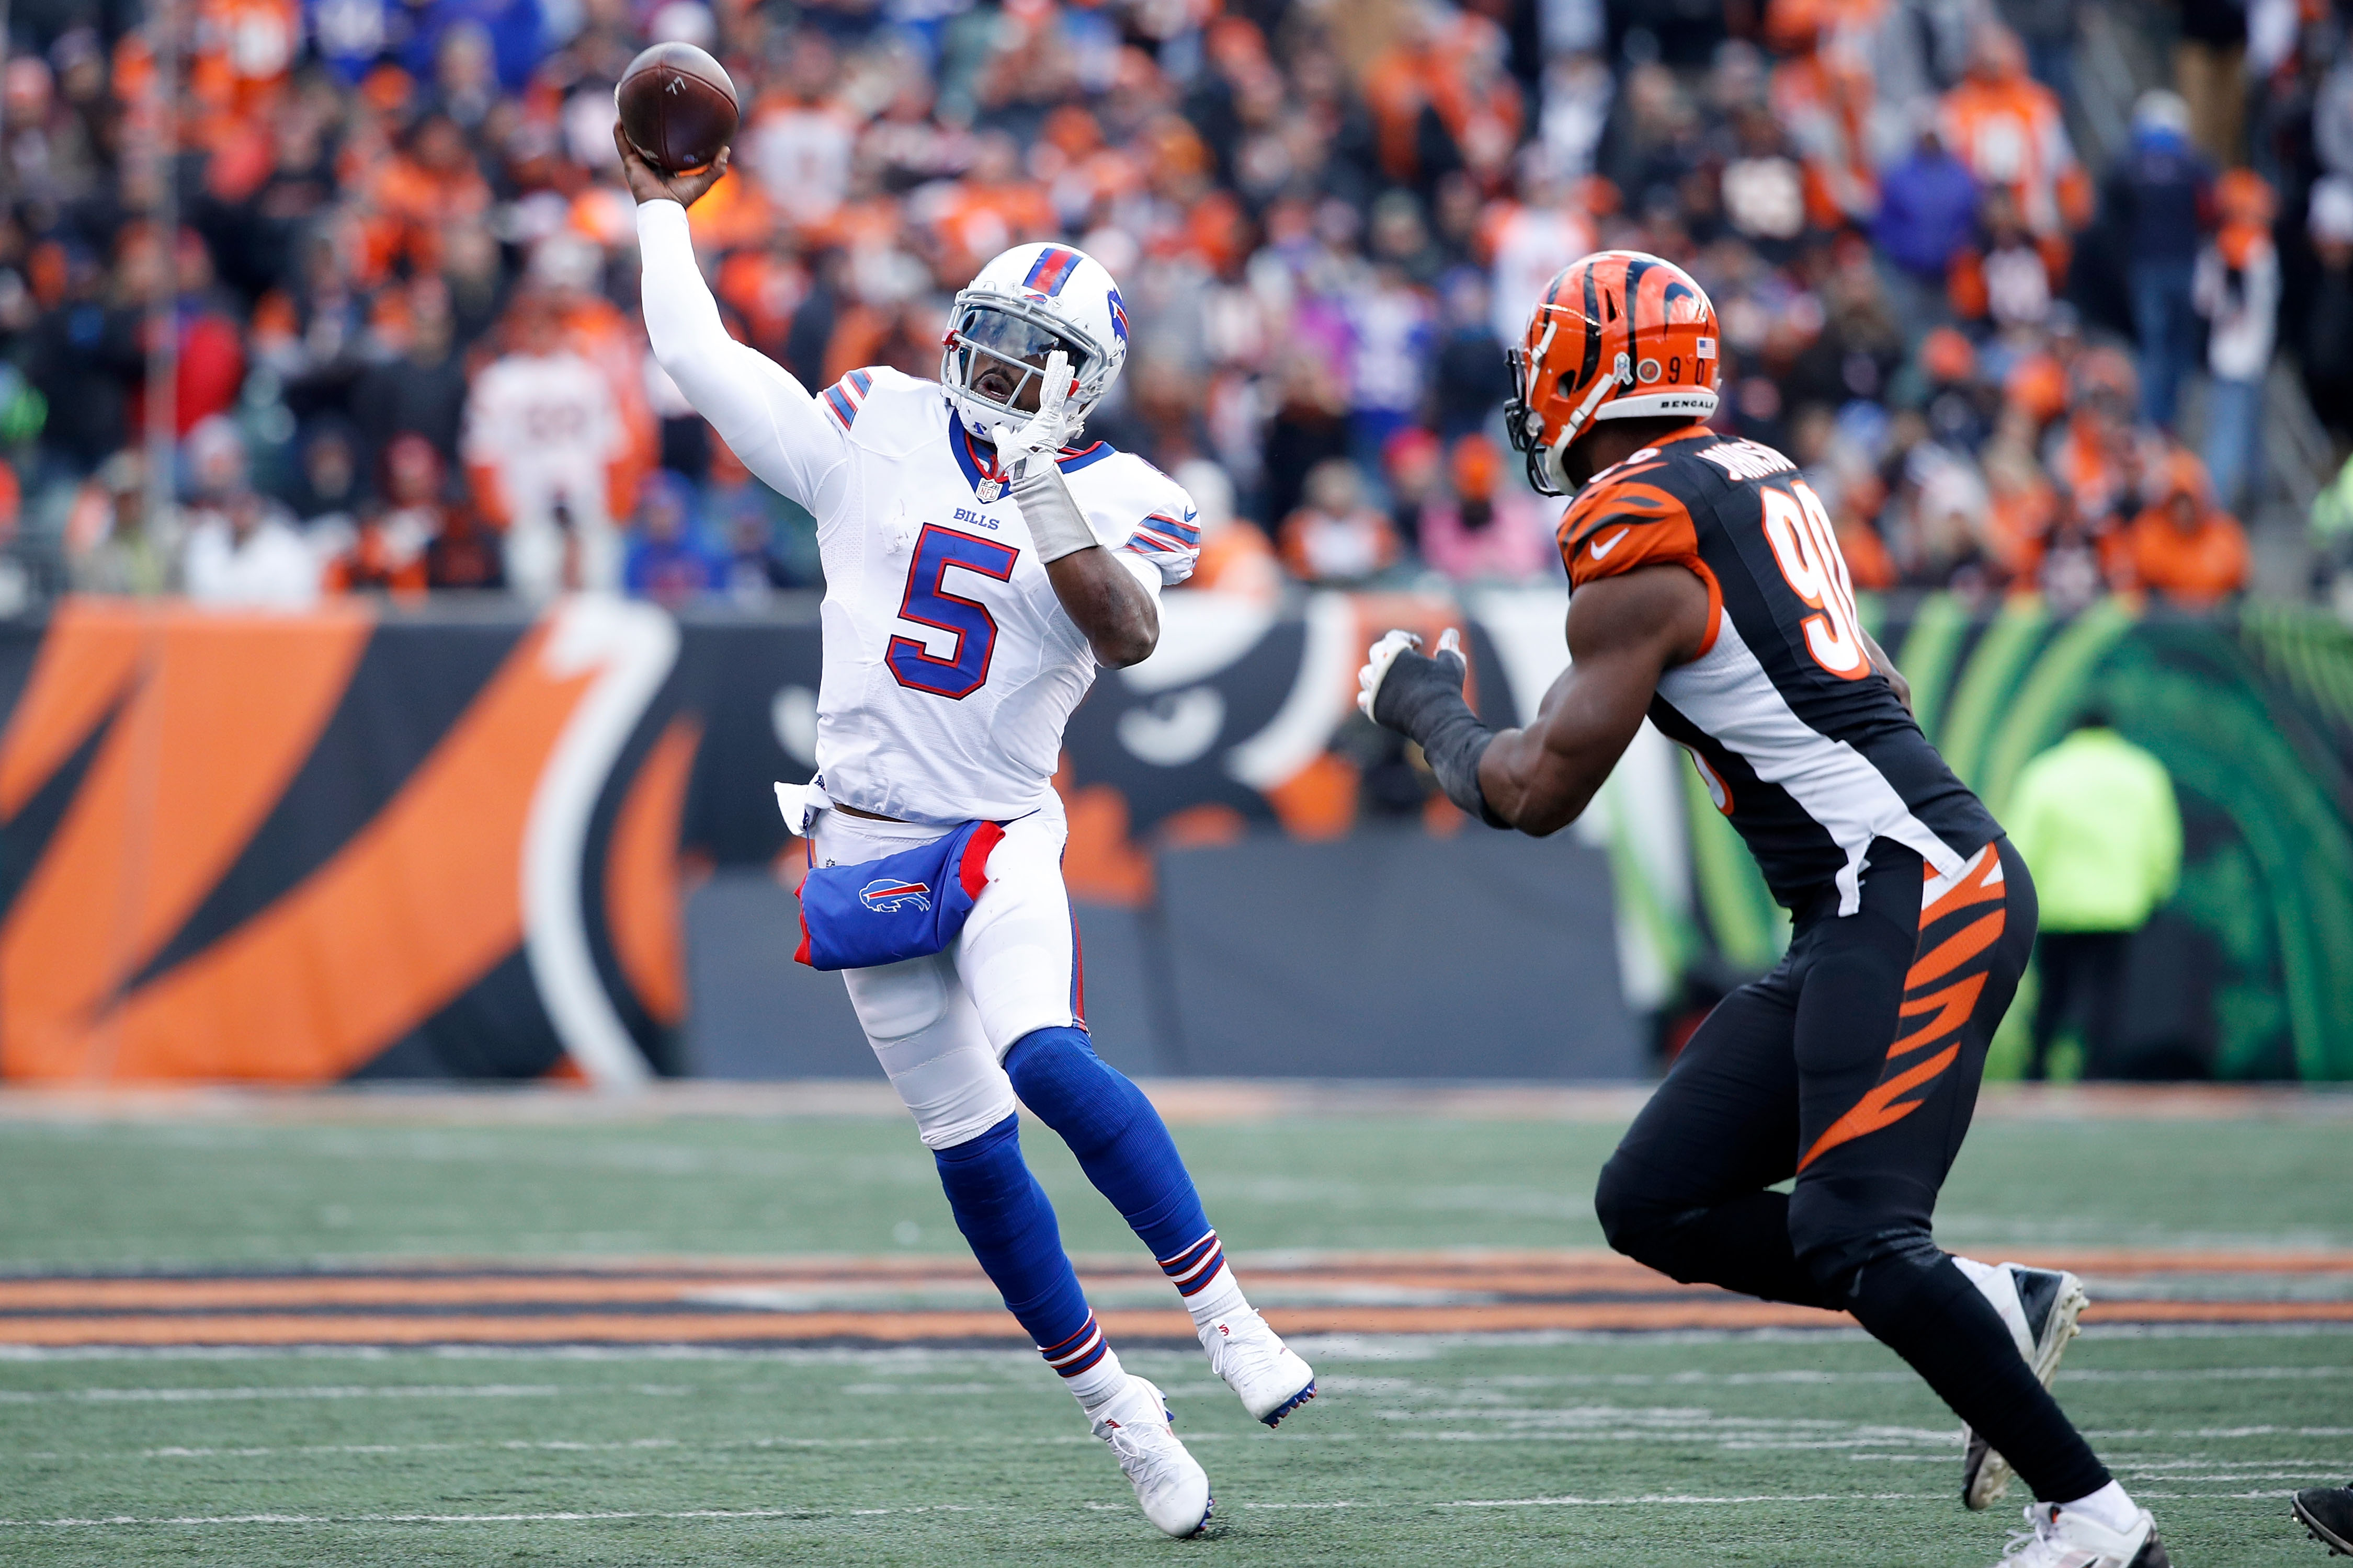 Tyrod Taylor throws a pass while being pressured by Michael Johnson. (Getty Images)